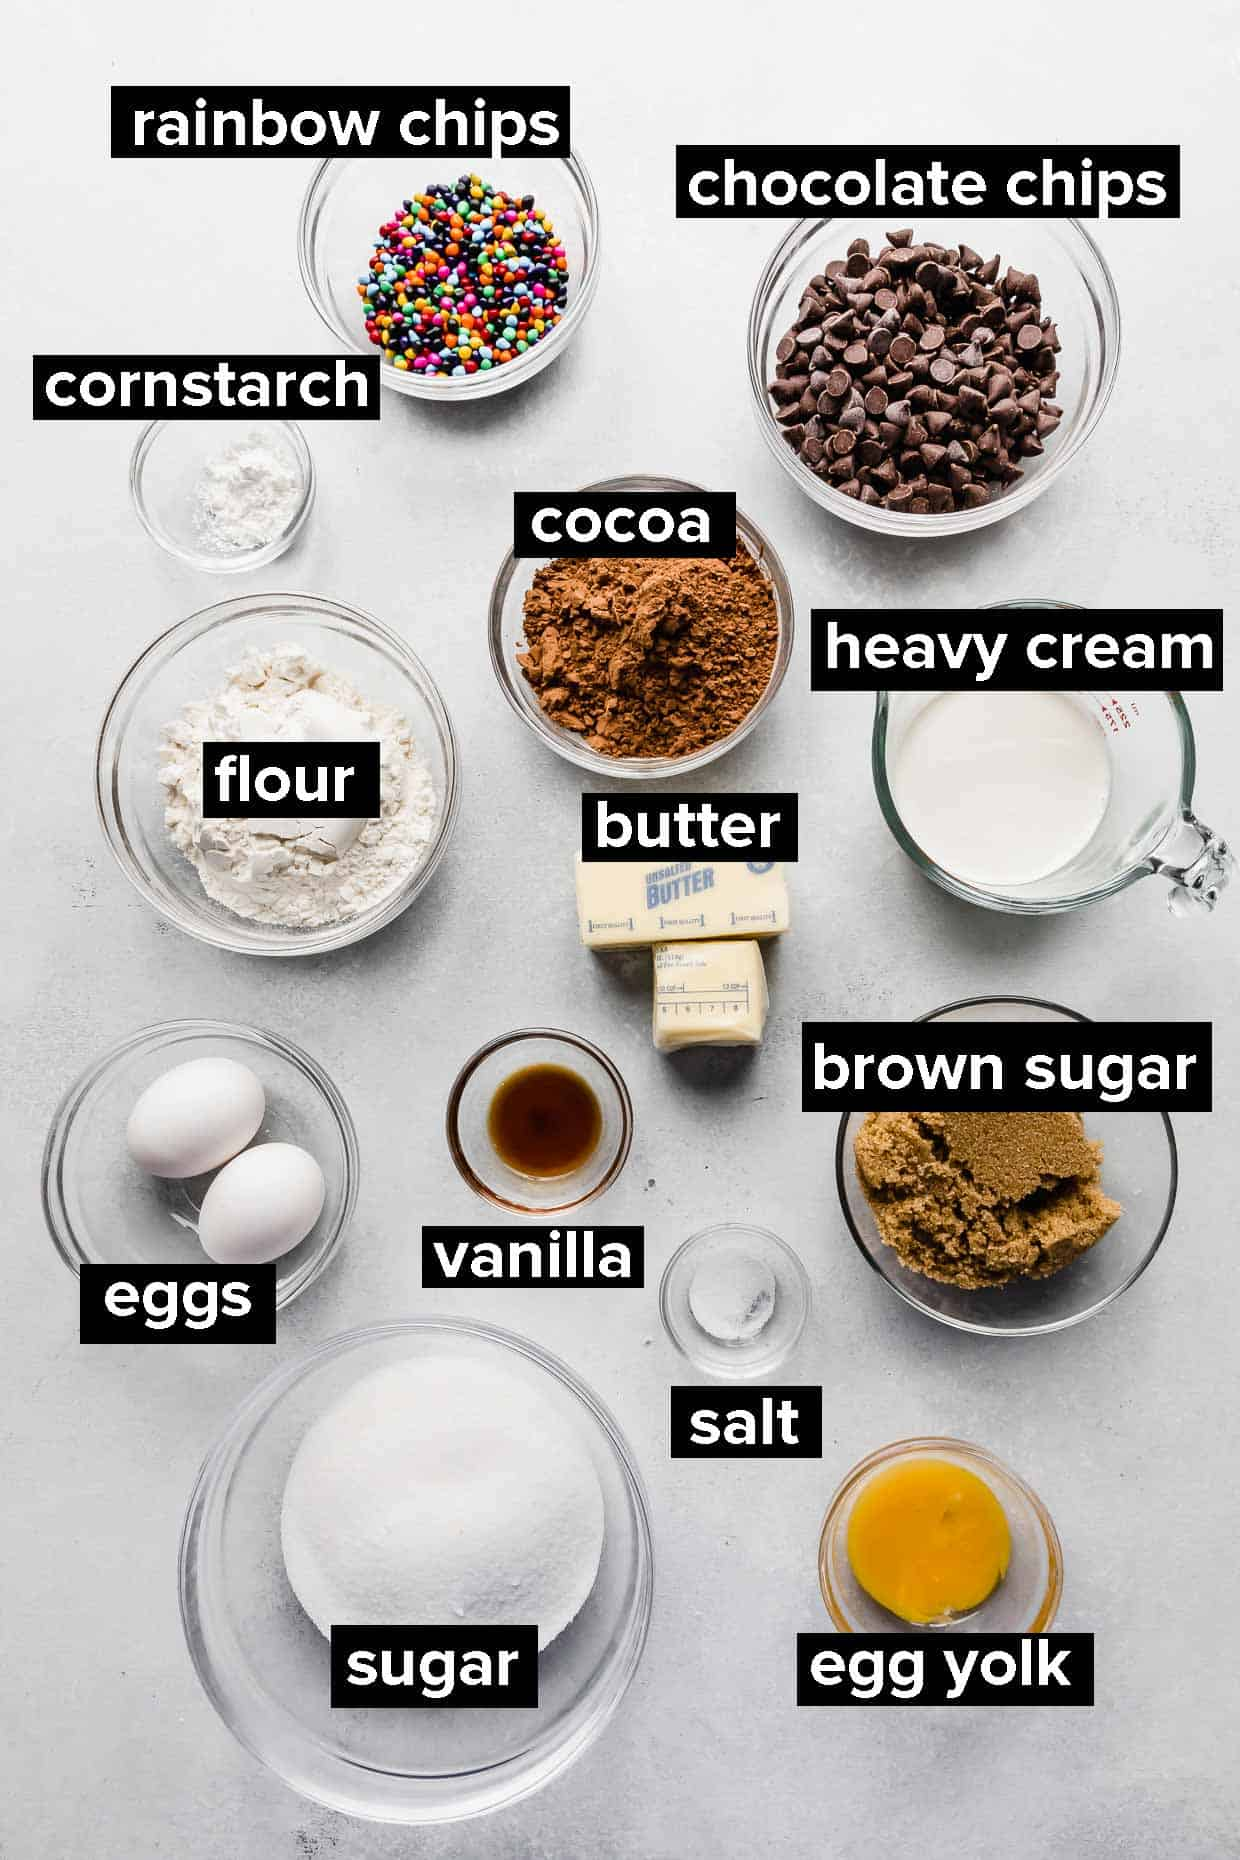 Ingredients used to make cosmic brownies on a white background.